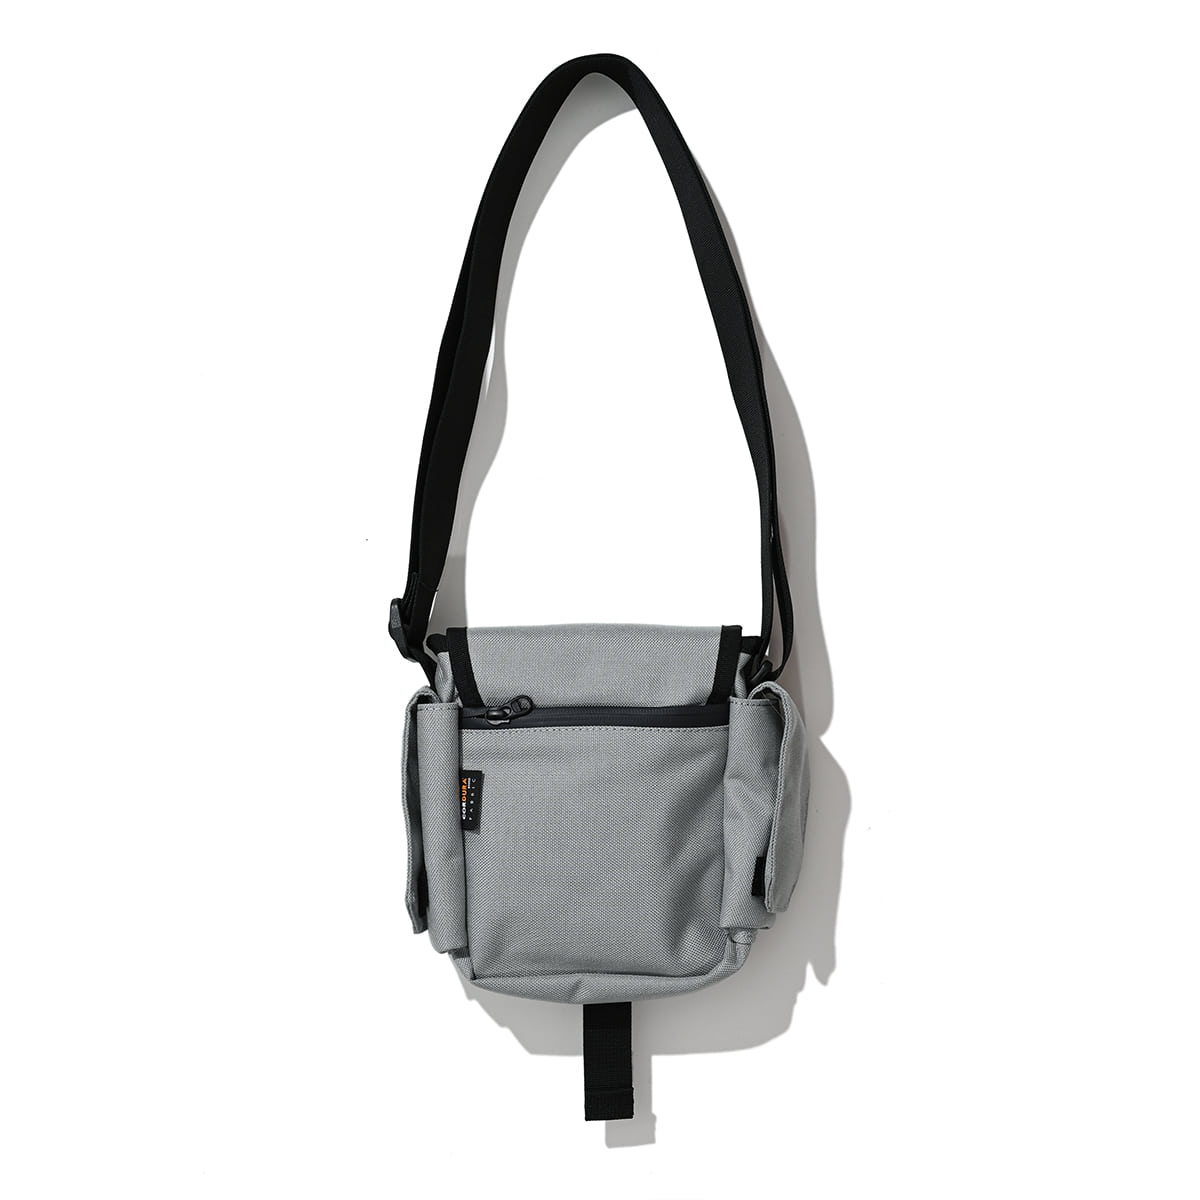 AA/C 3M Shot Bag (gray)